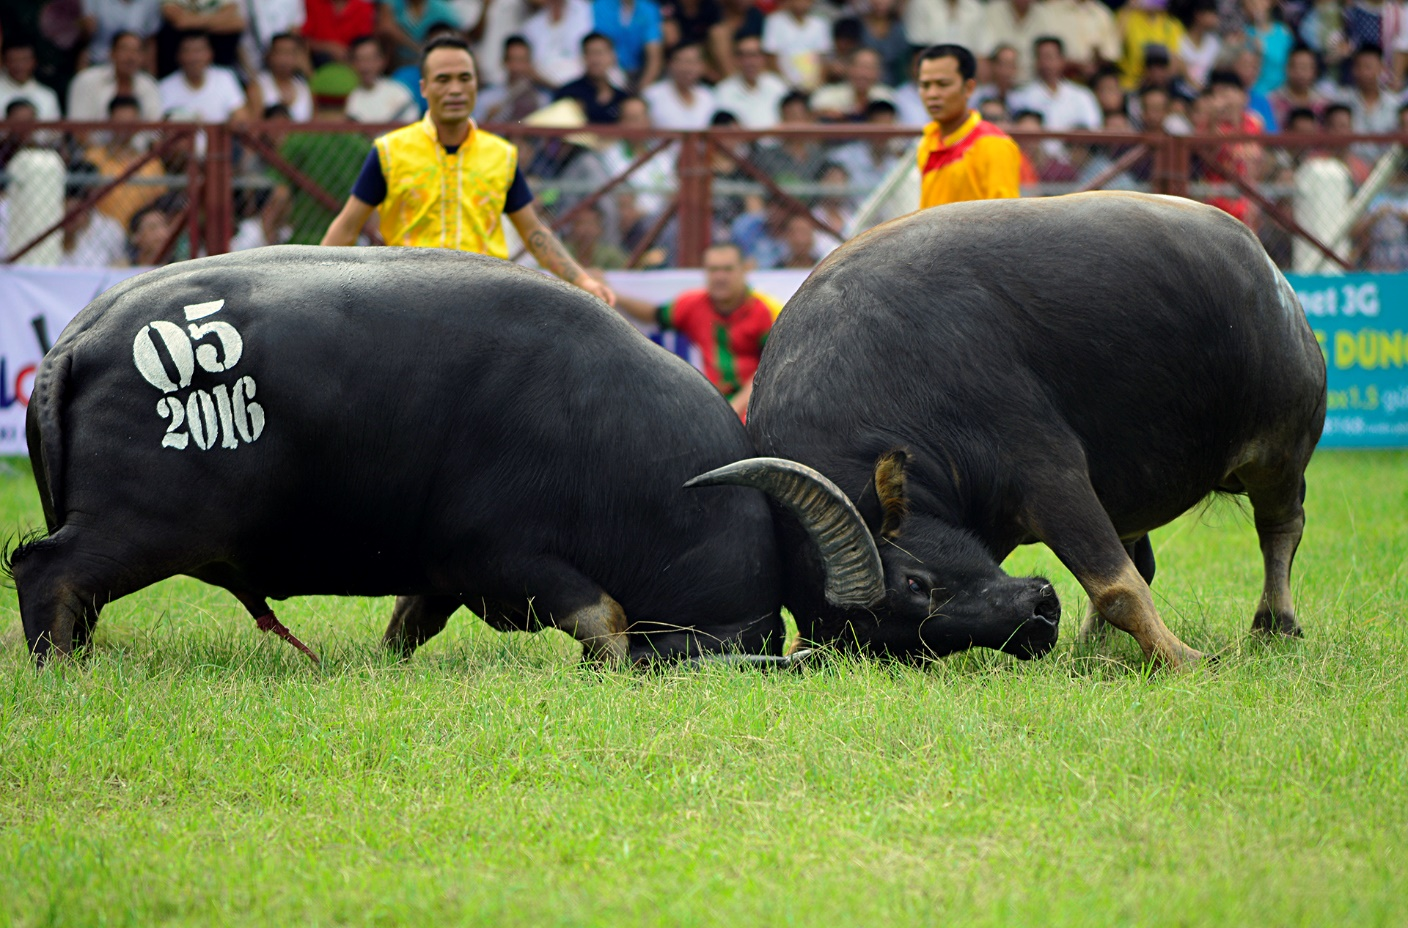 2 buffaloes clasped each other in the match